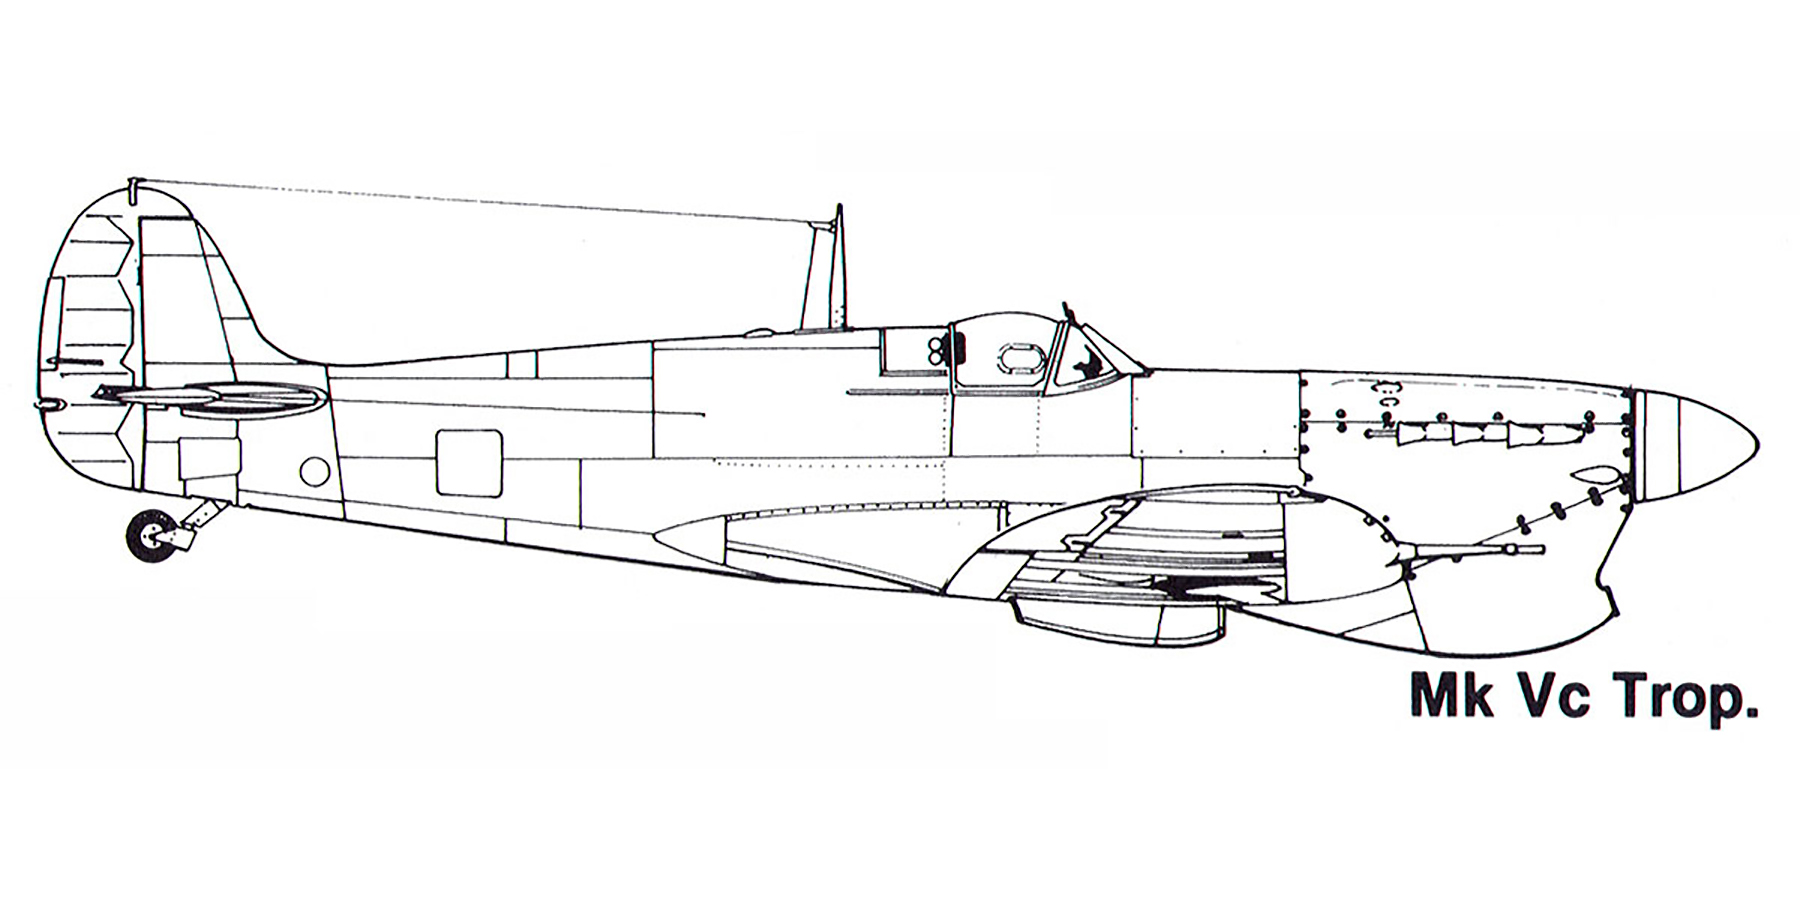 Aircraft profile Spitfire MkVcTrop blue print scale drawing 0A